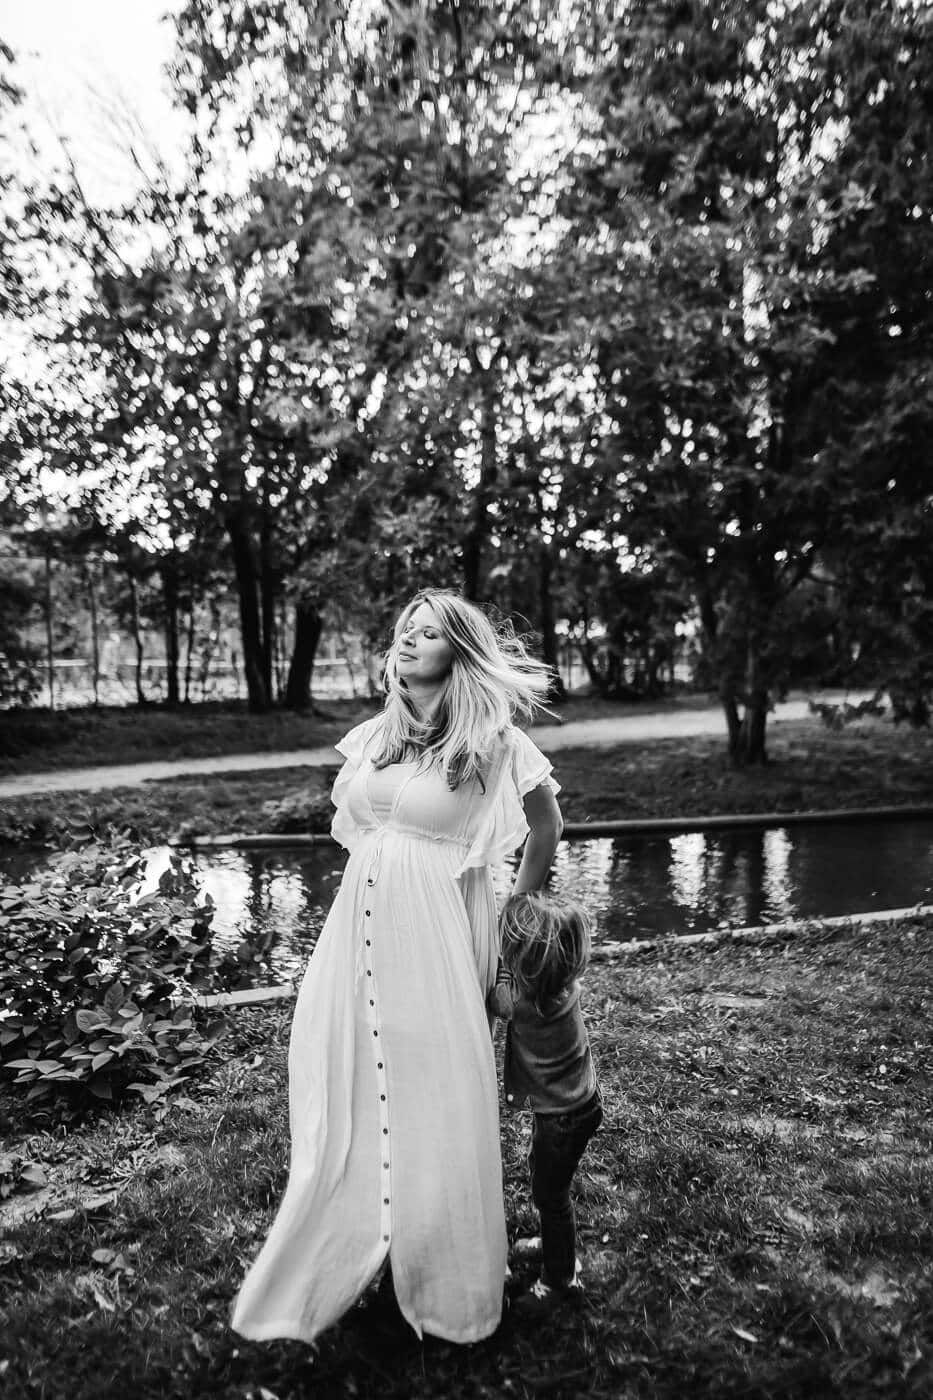 Pregnant mom with wind blowing through her hair as young son runs around her